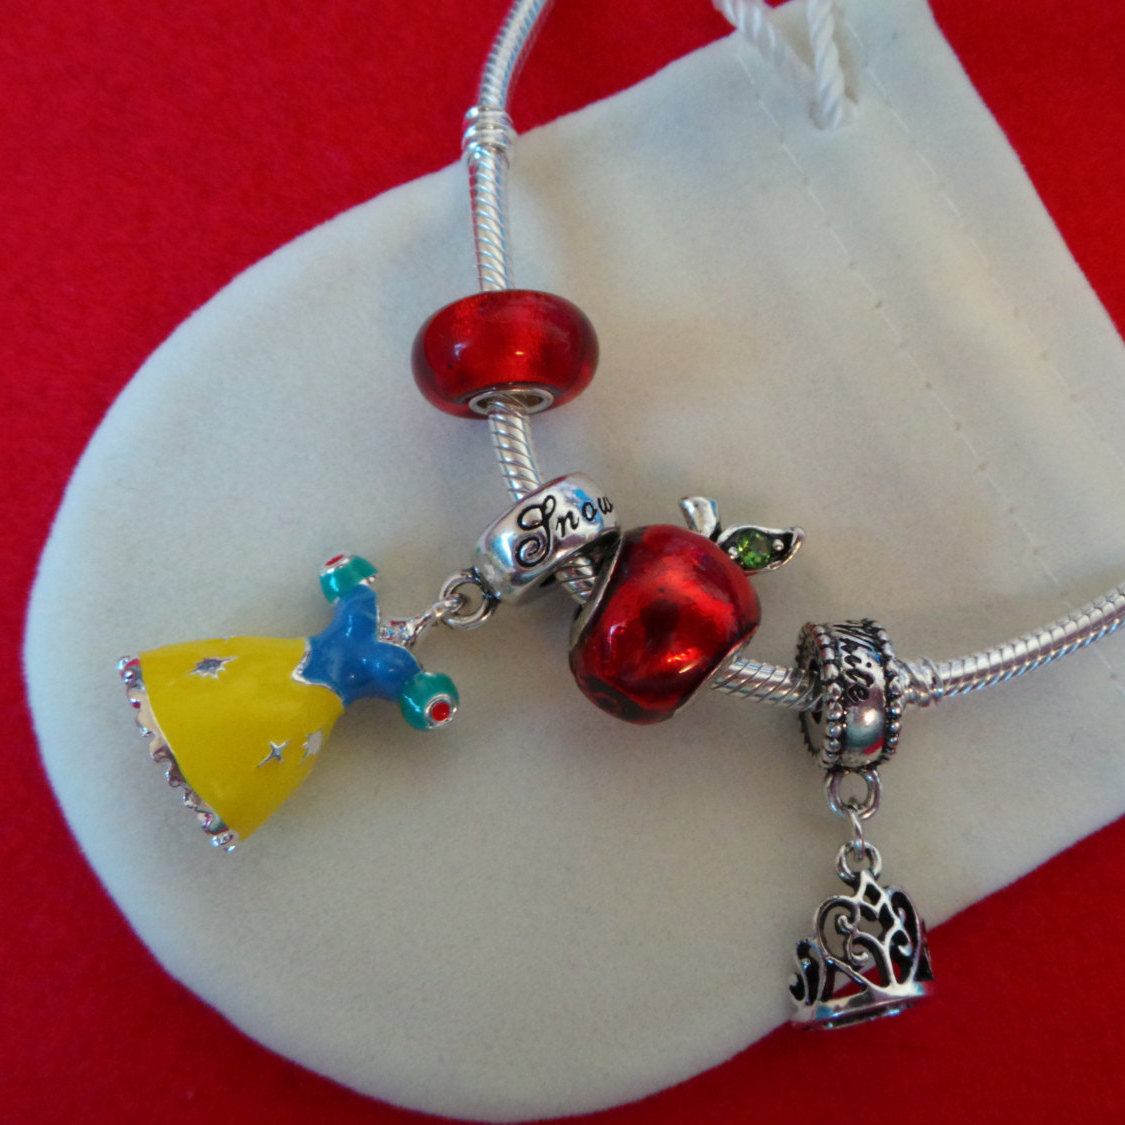 NEW Disney Princess Theme Charm - Snow White's Dress Enamel & silver plate + BAG